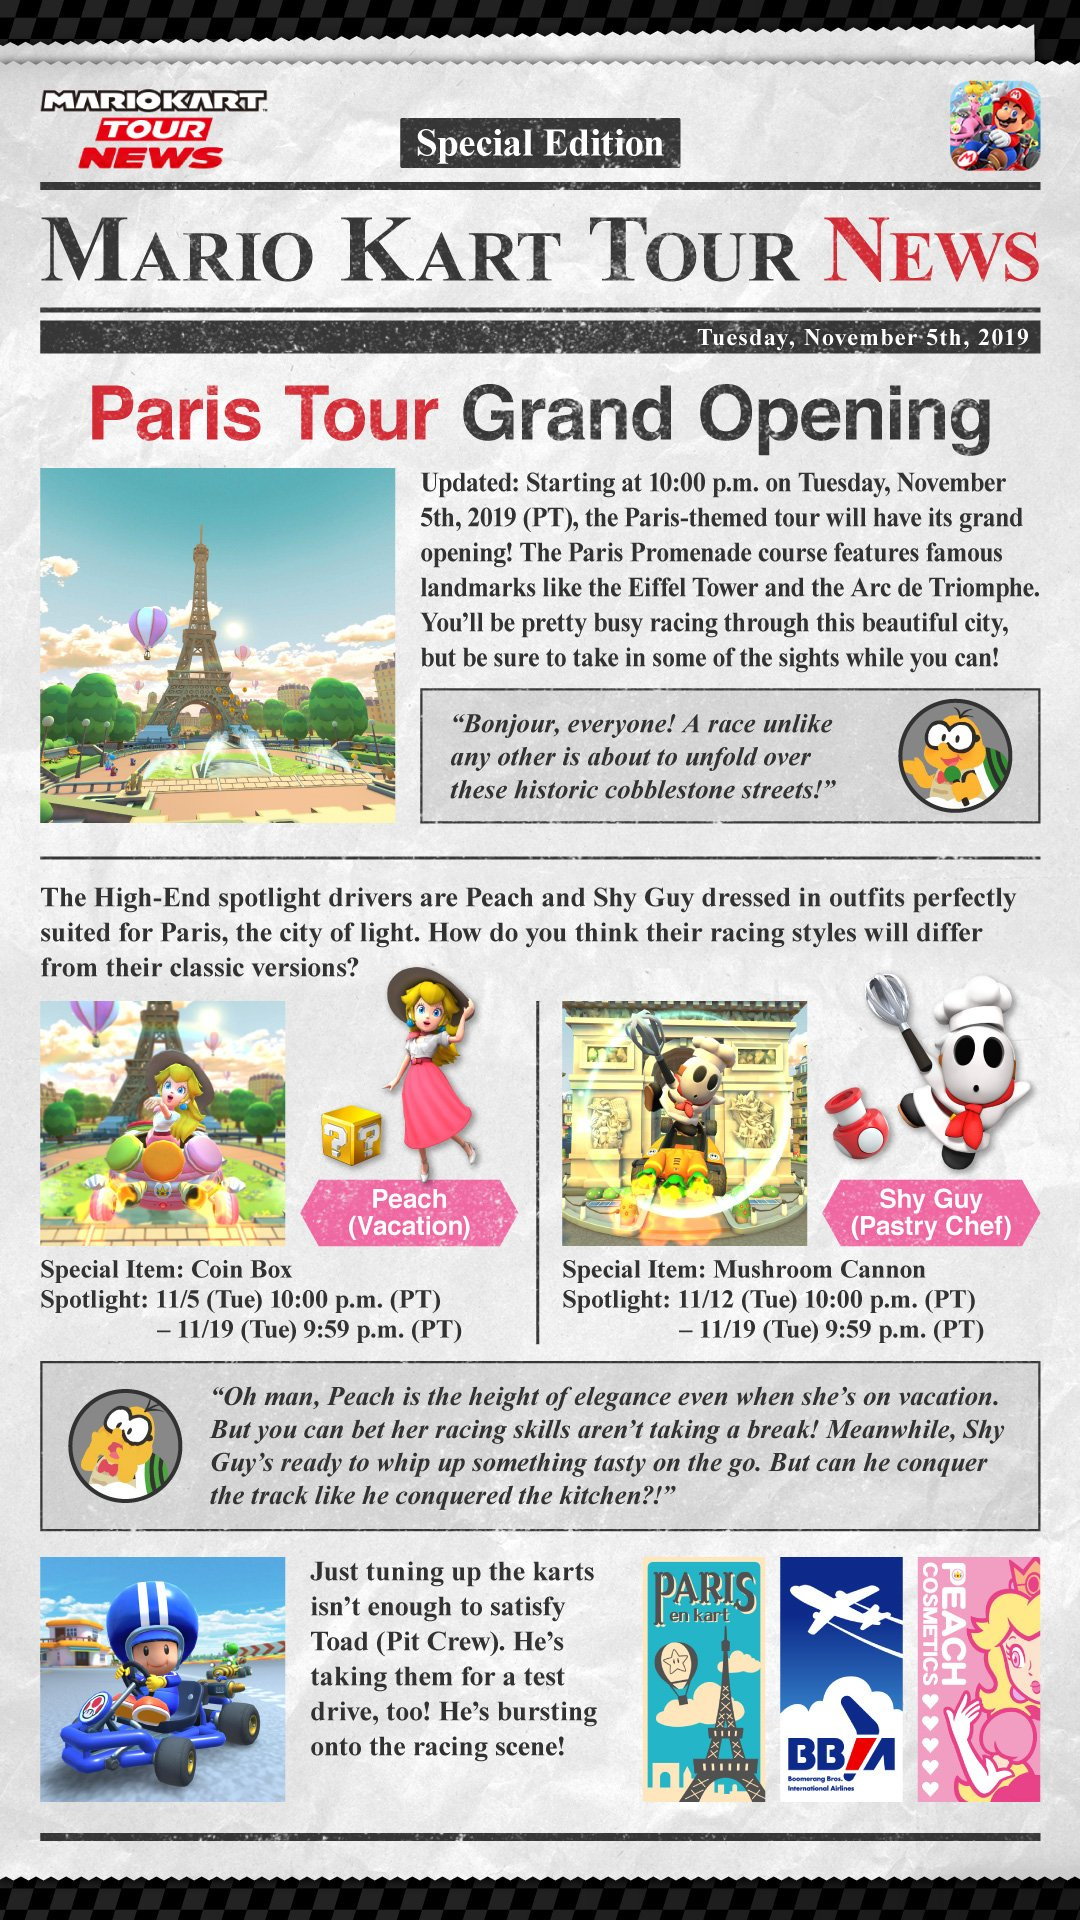 Mario Kart Tour S Next Stop Is Paris Complete With Vacation Peach